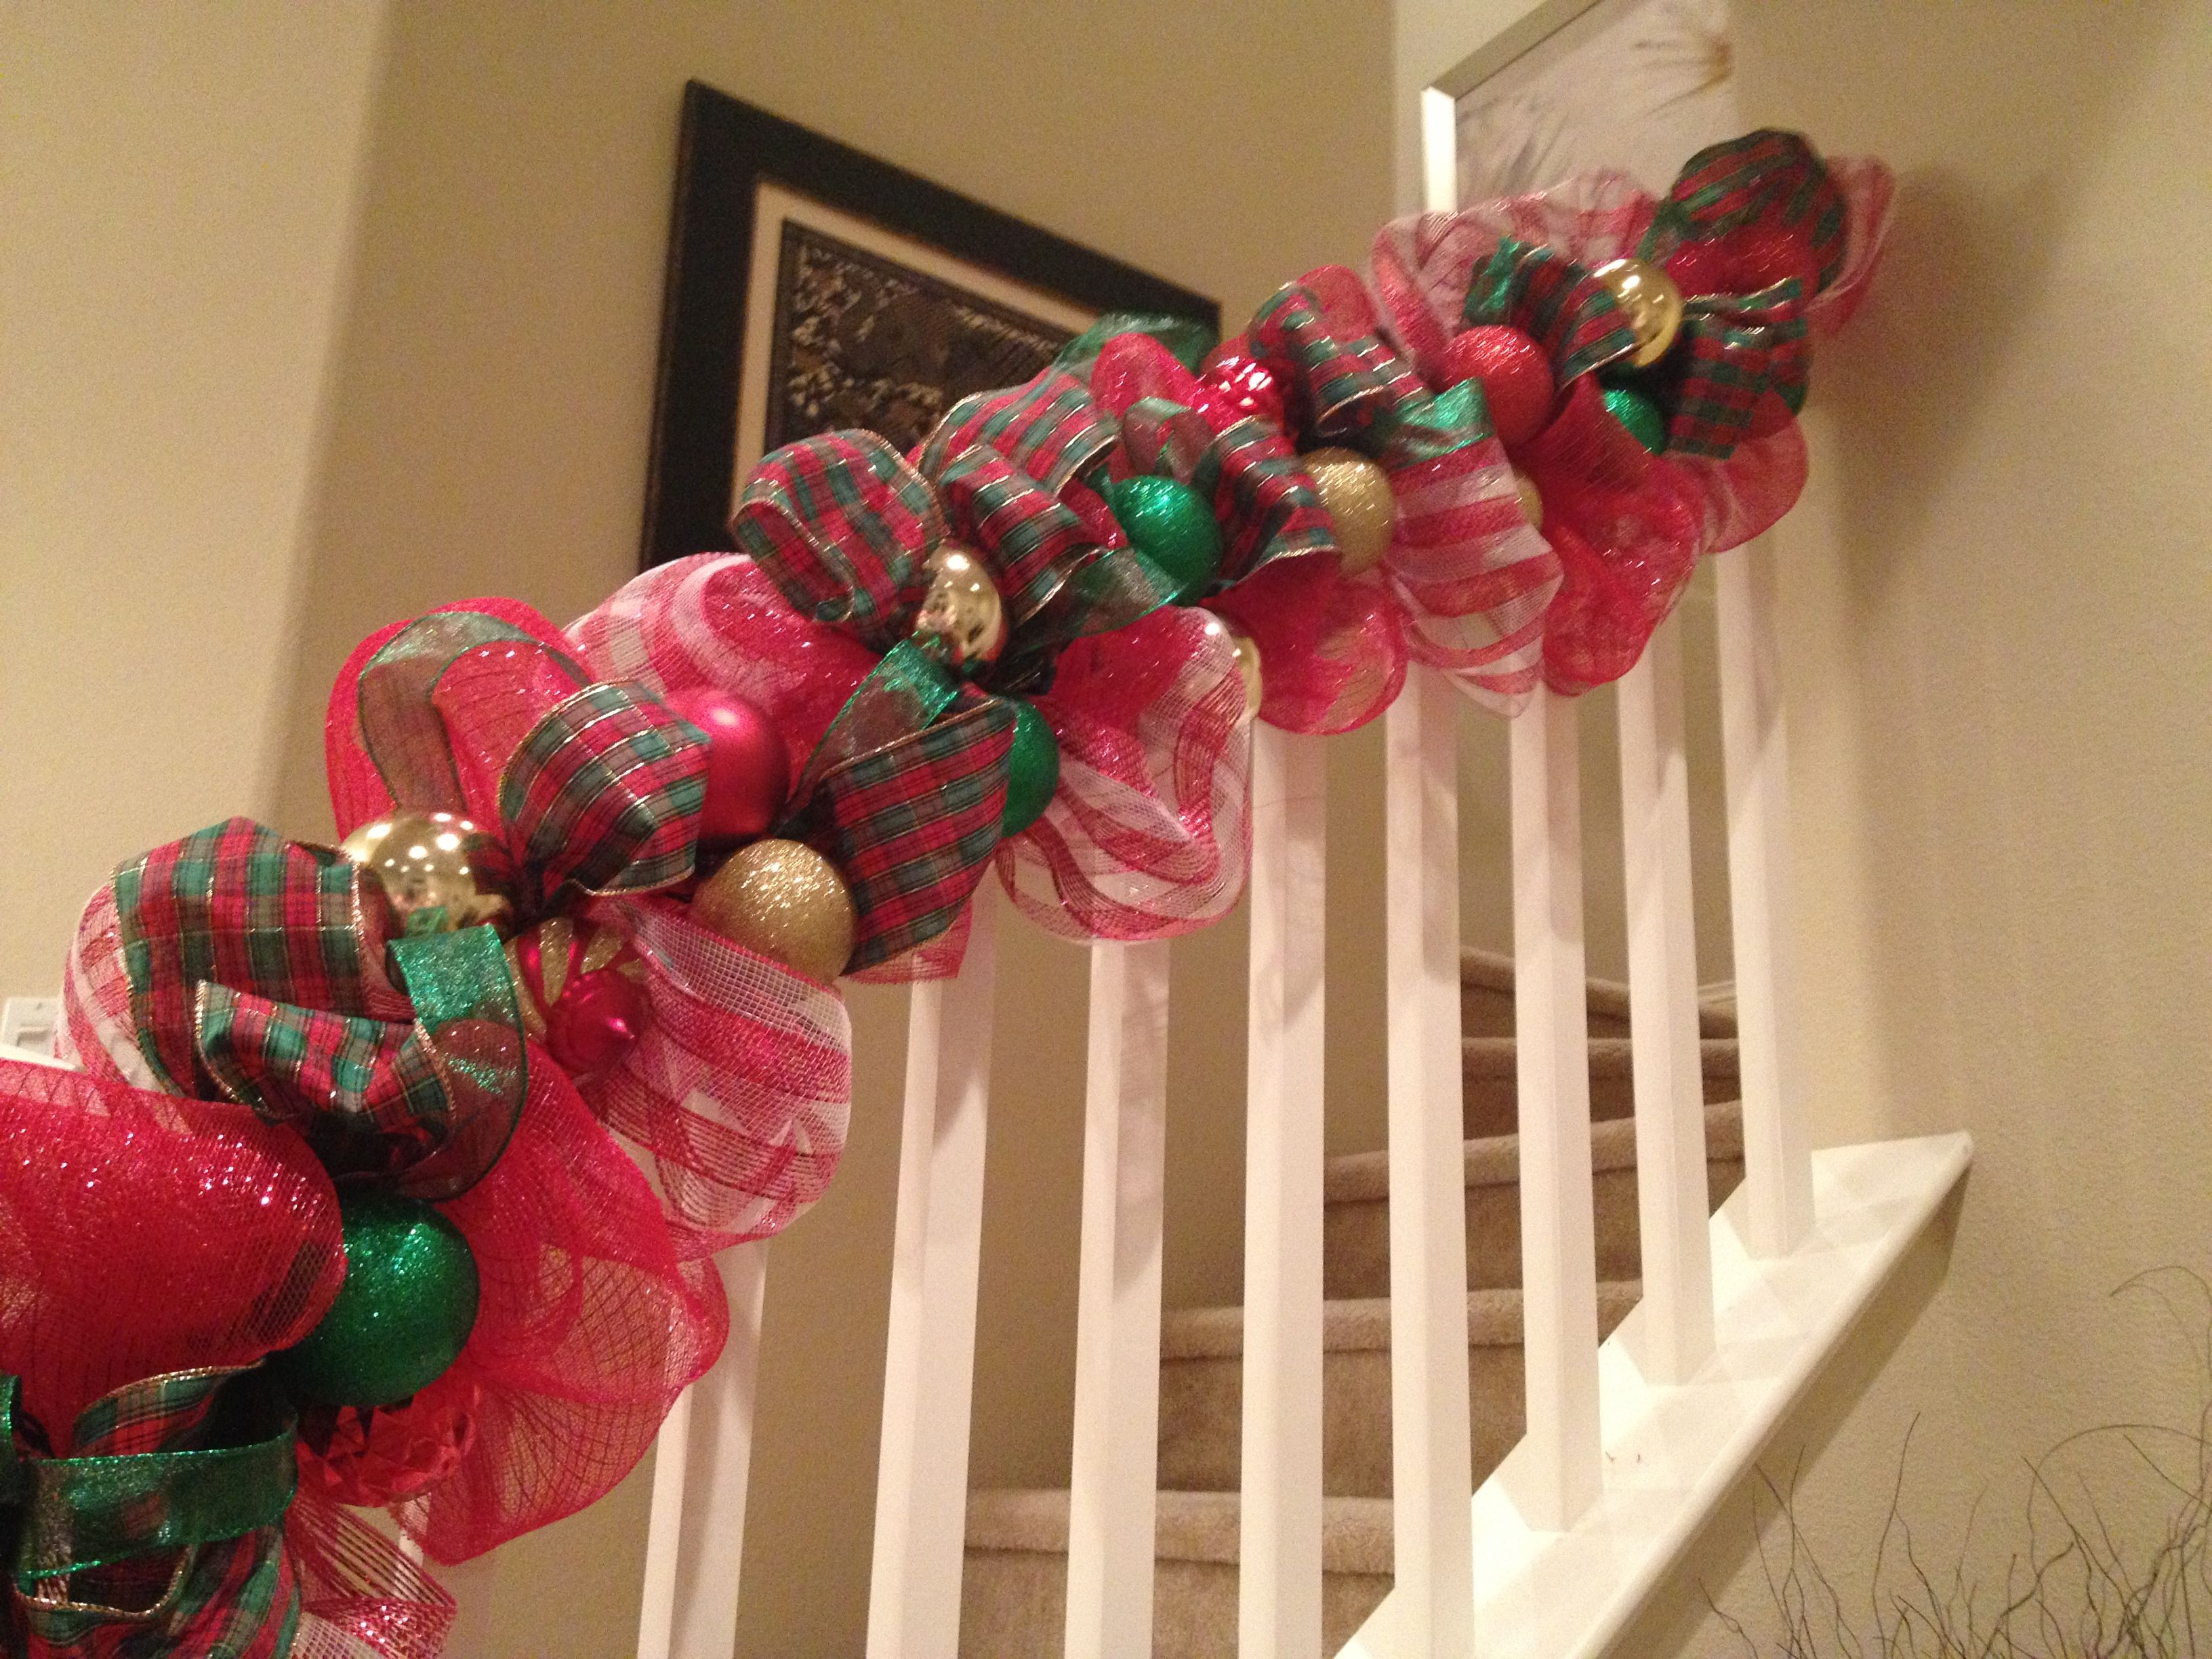 deco mesh banister deco mesh banister decorating stairs stair decor banister christmas - How To Decorate A Staircase For Christmas With Deco Mesh